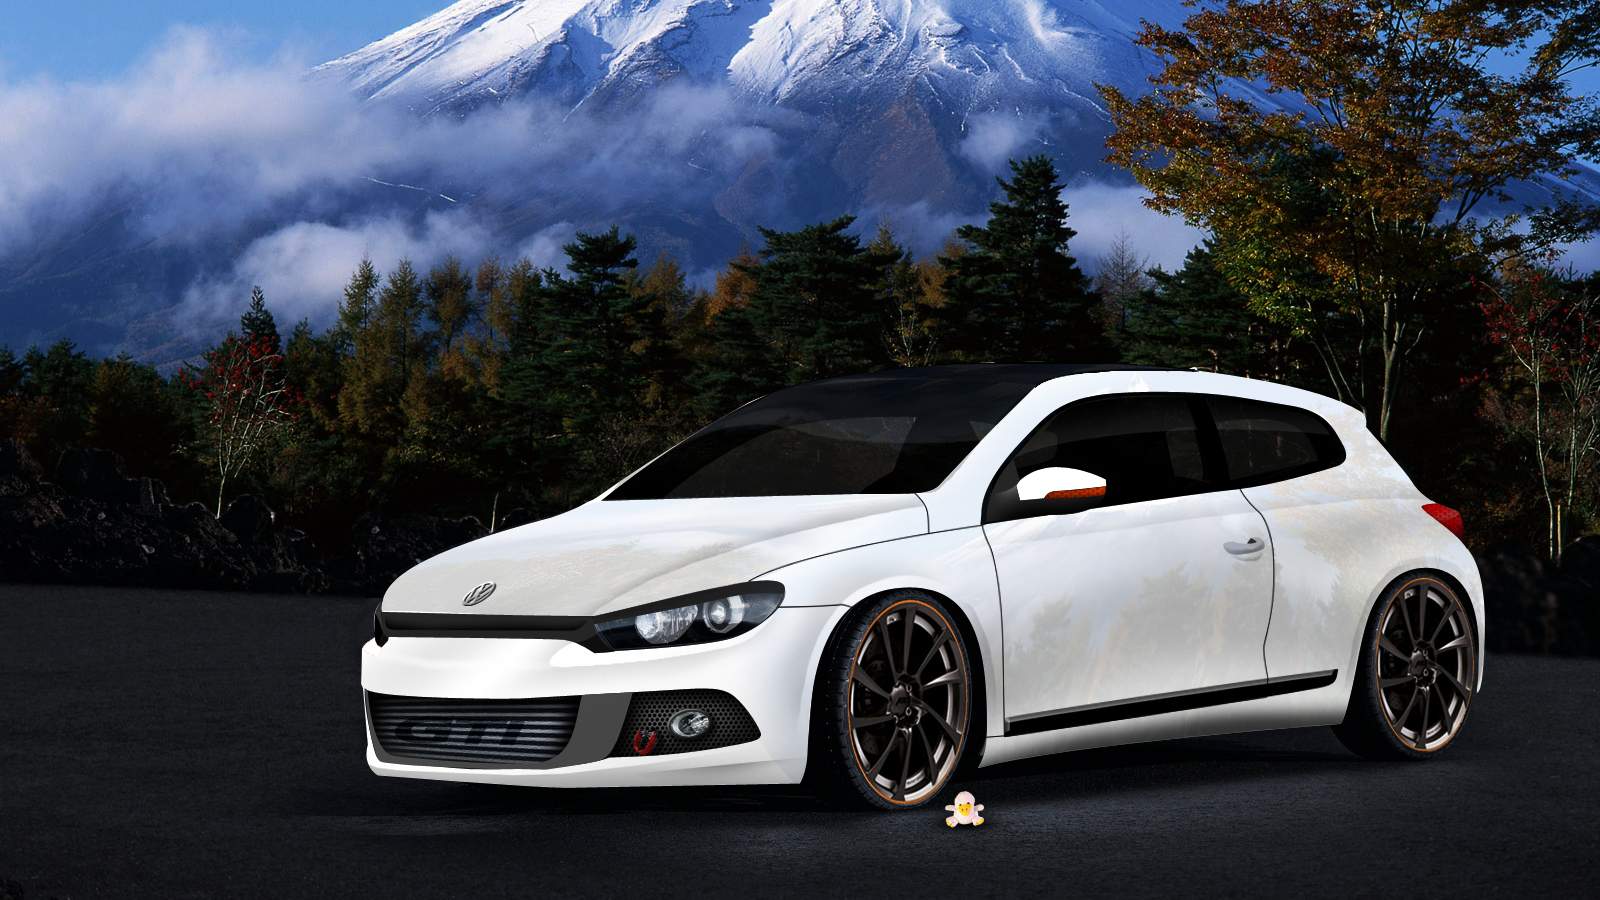 Vw Scirocco Gti By Sliqz On Deviantart